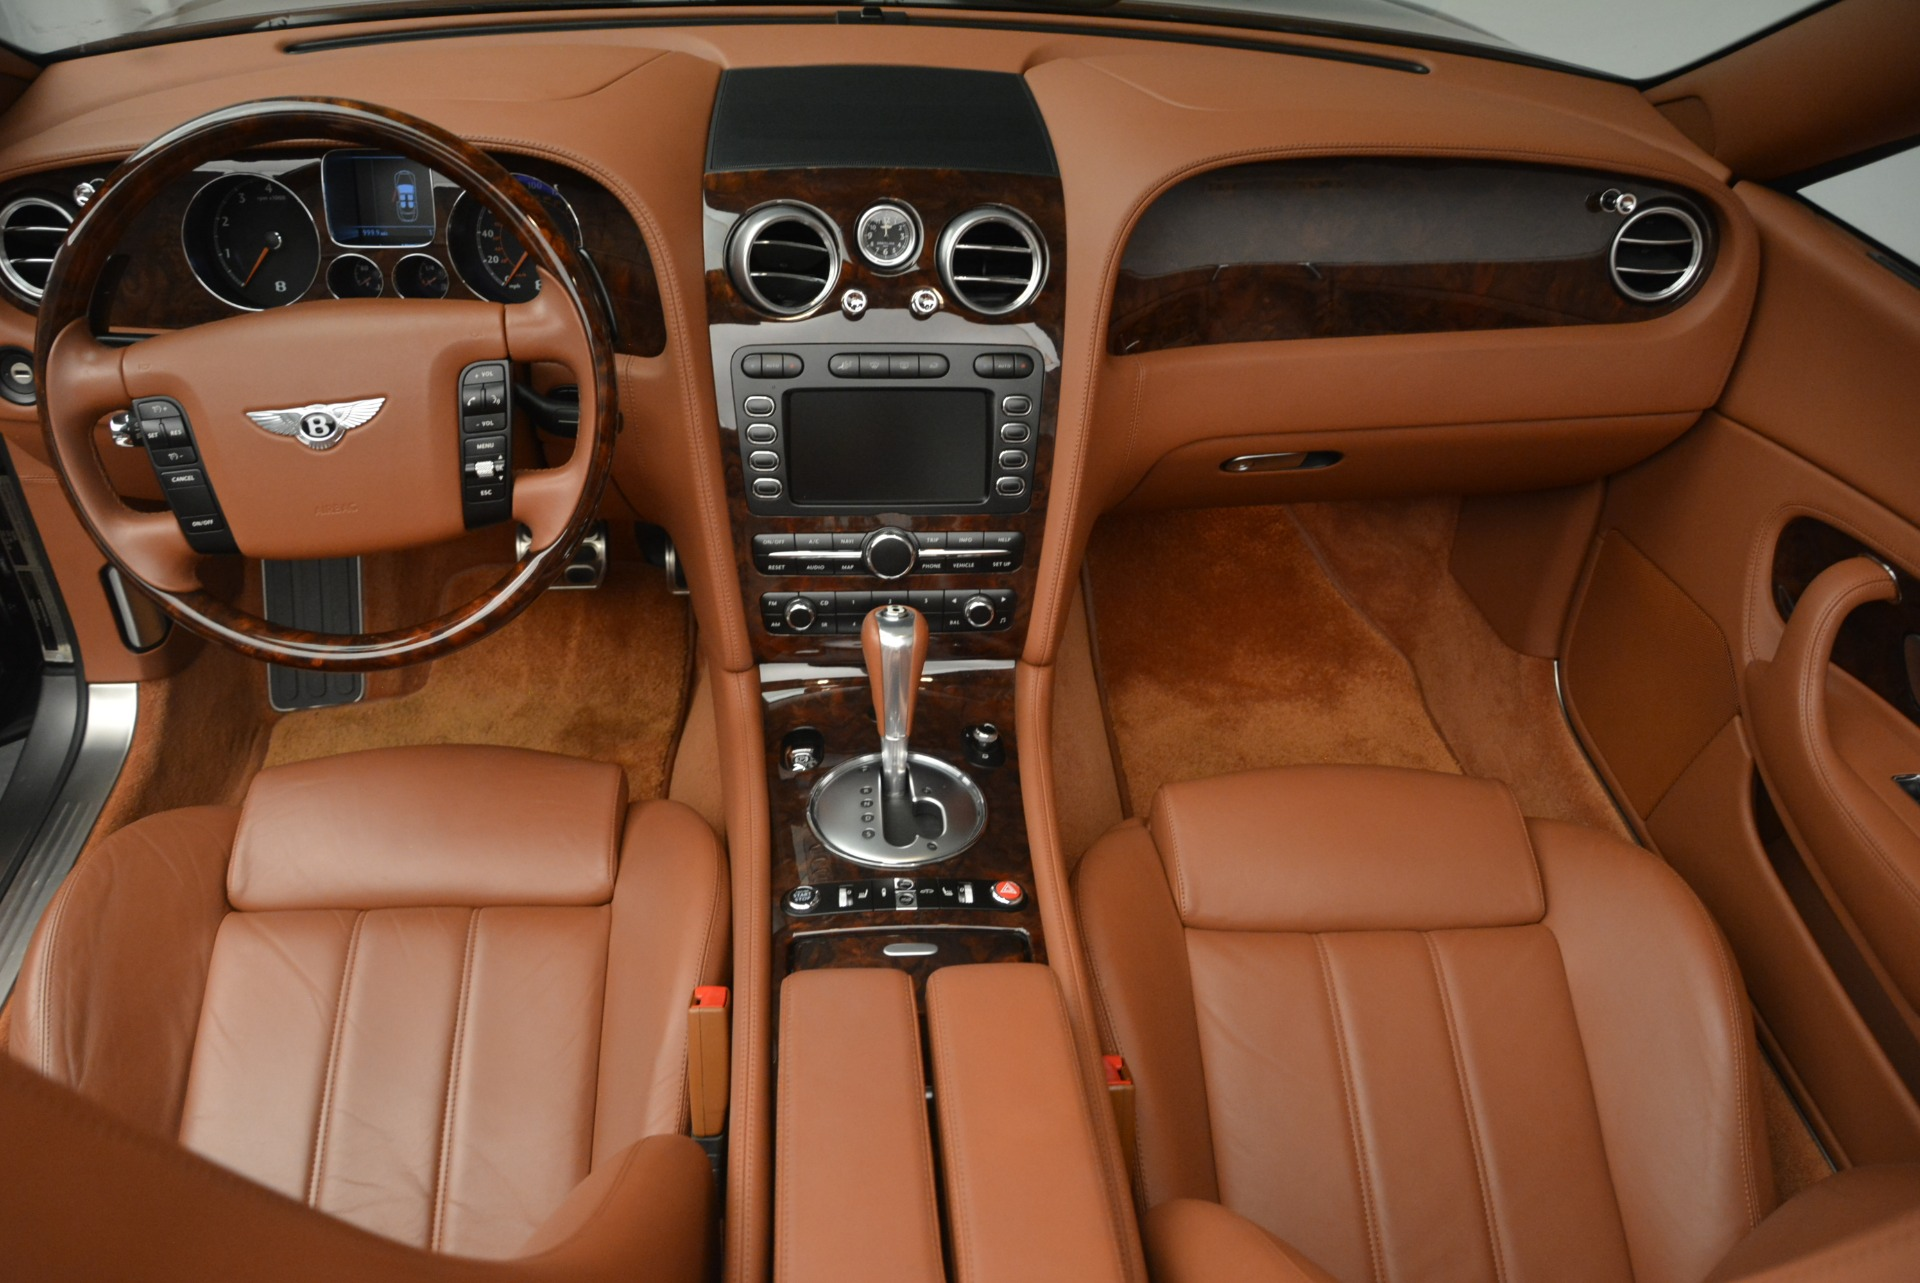 Used 2008 Bentley Continental GTC  For Sale In Westport, CT 2307_p28